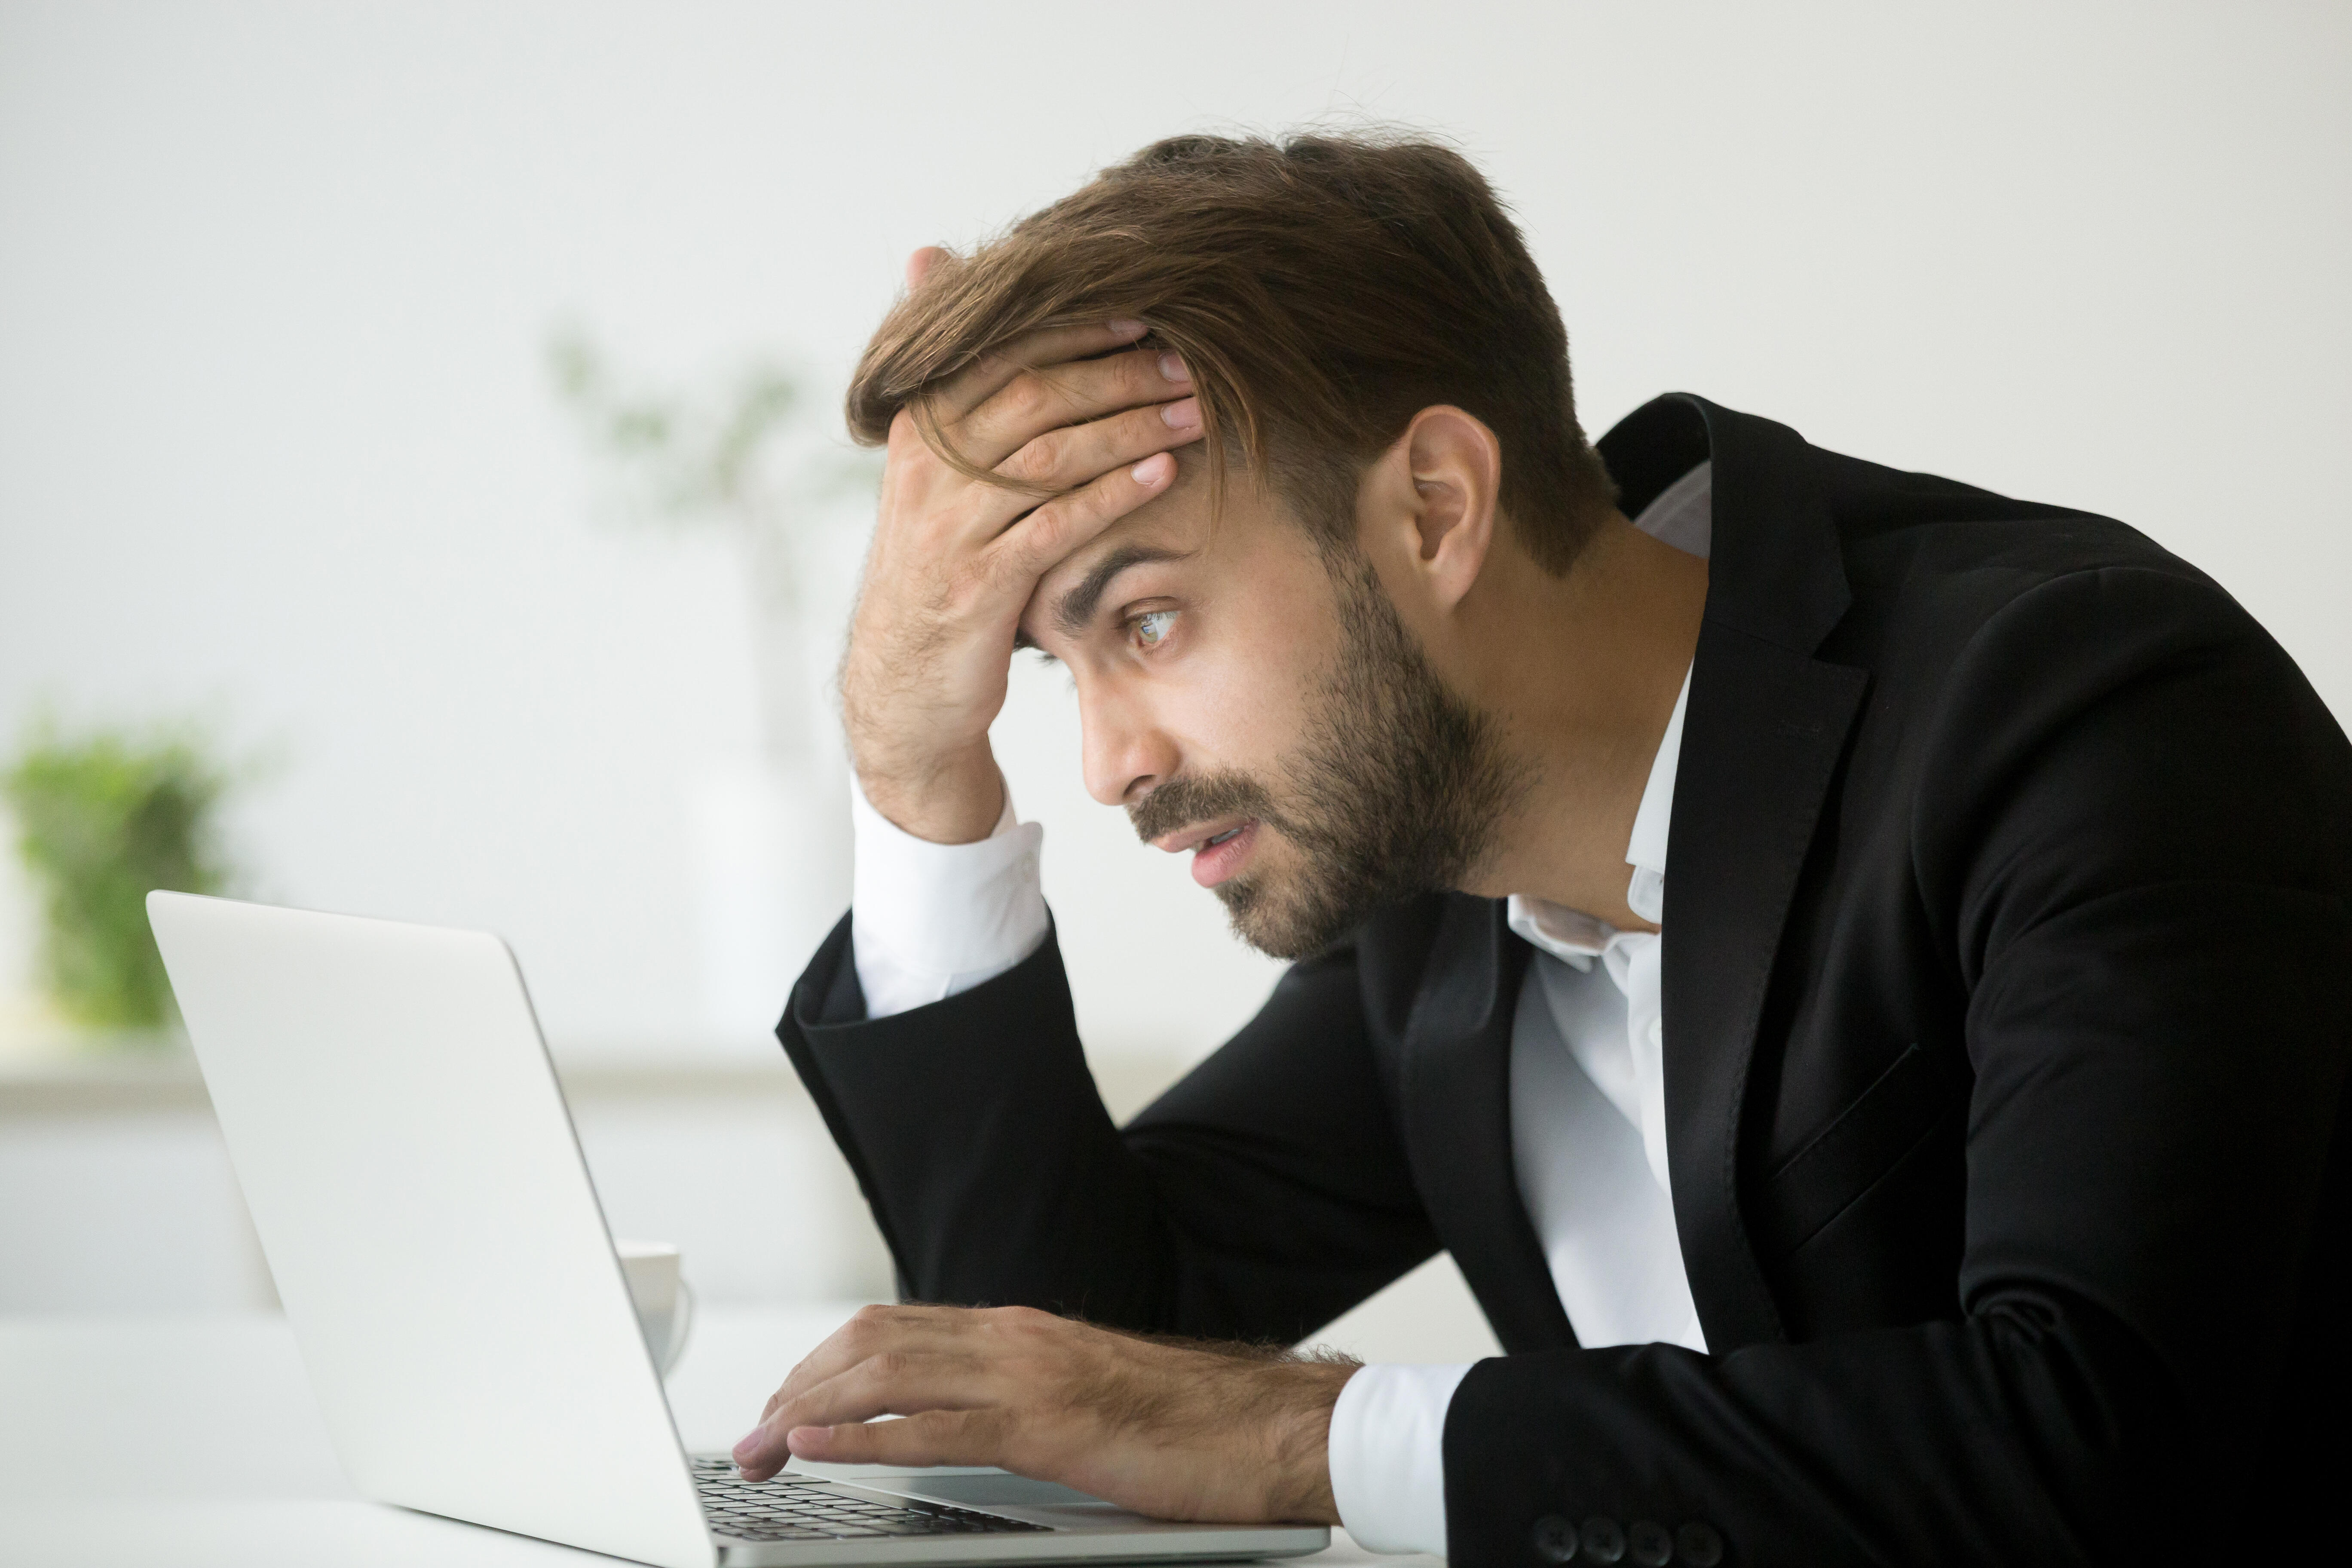 Stressed businessman looks at his laptop